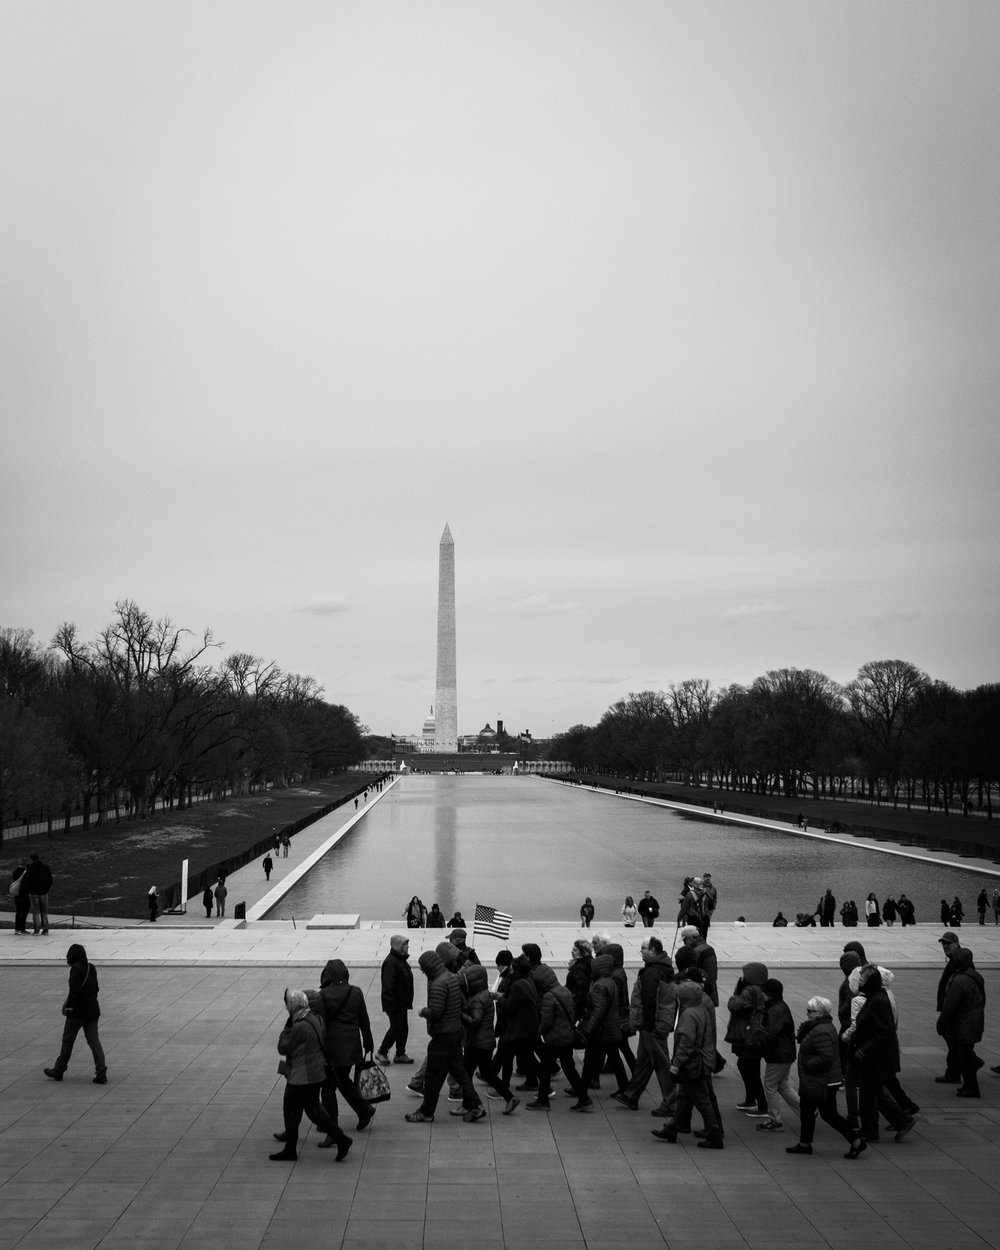 A group of tourists walks in front of the Lincoln Memorial Reflecting Pool.